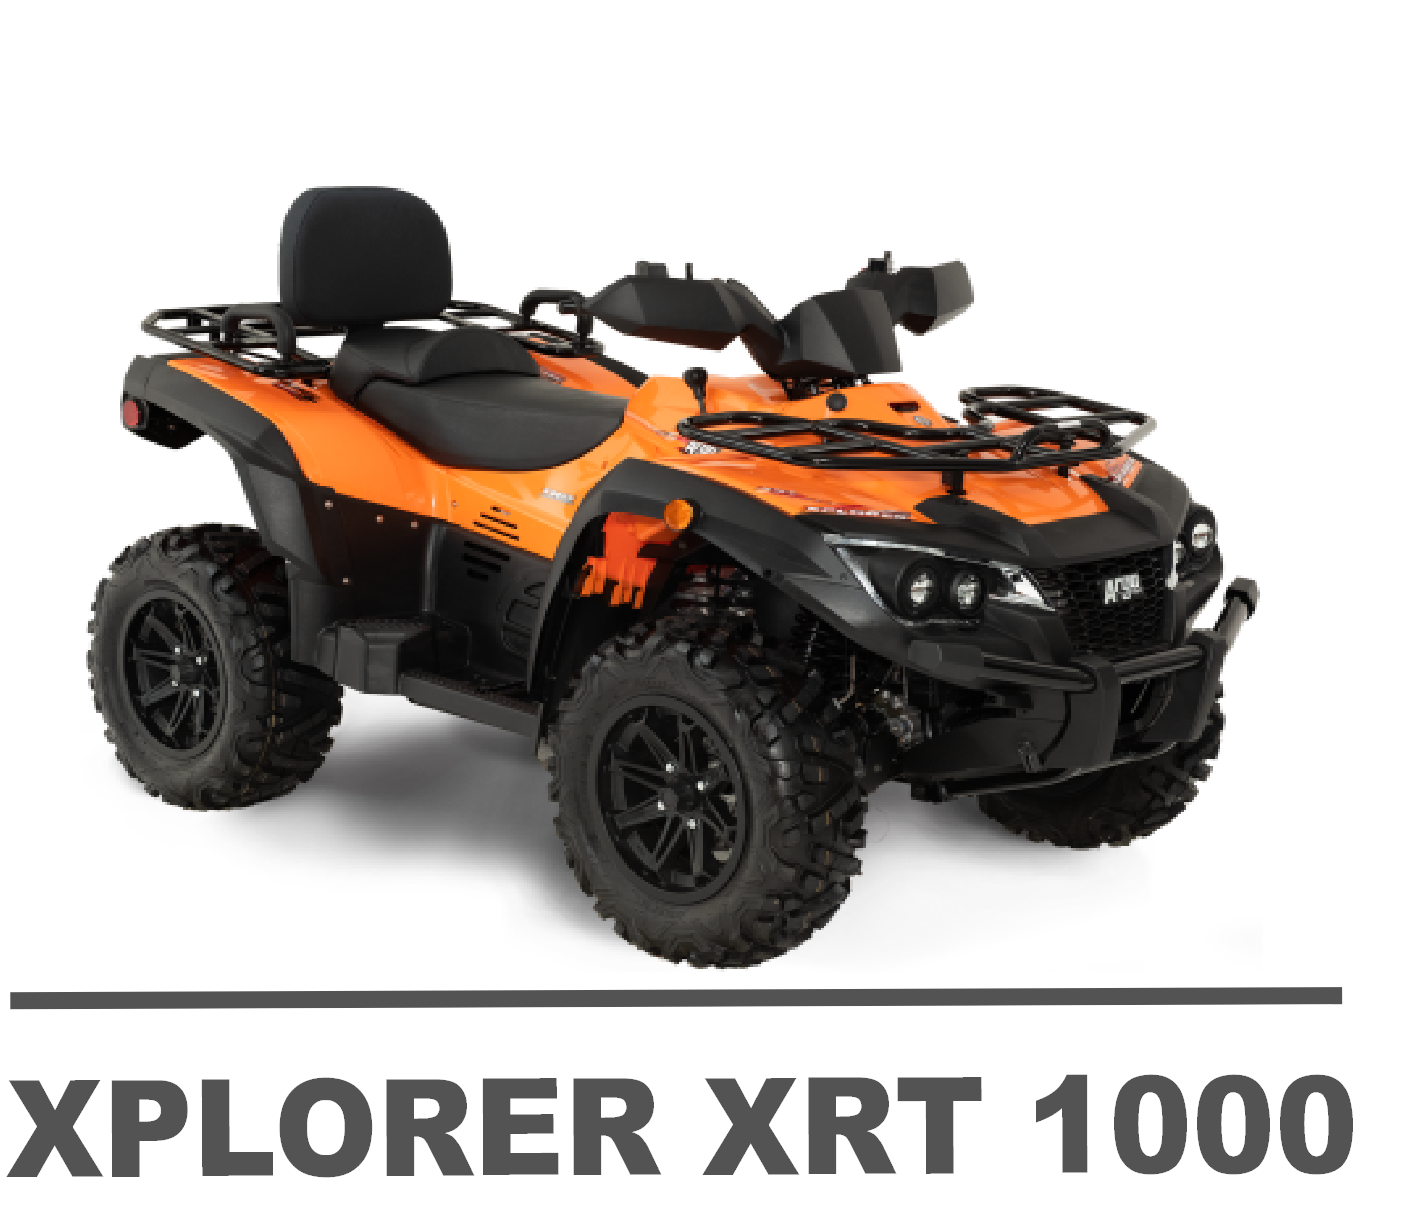 ARGO XPLORER XRT 1000 MANUALS